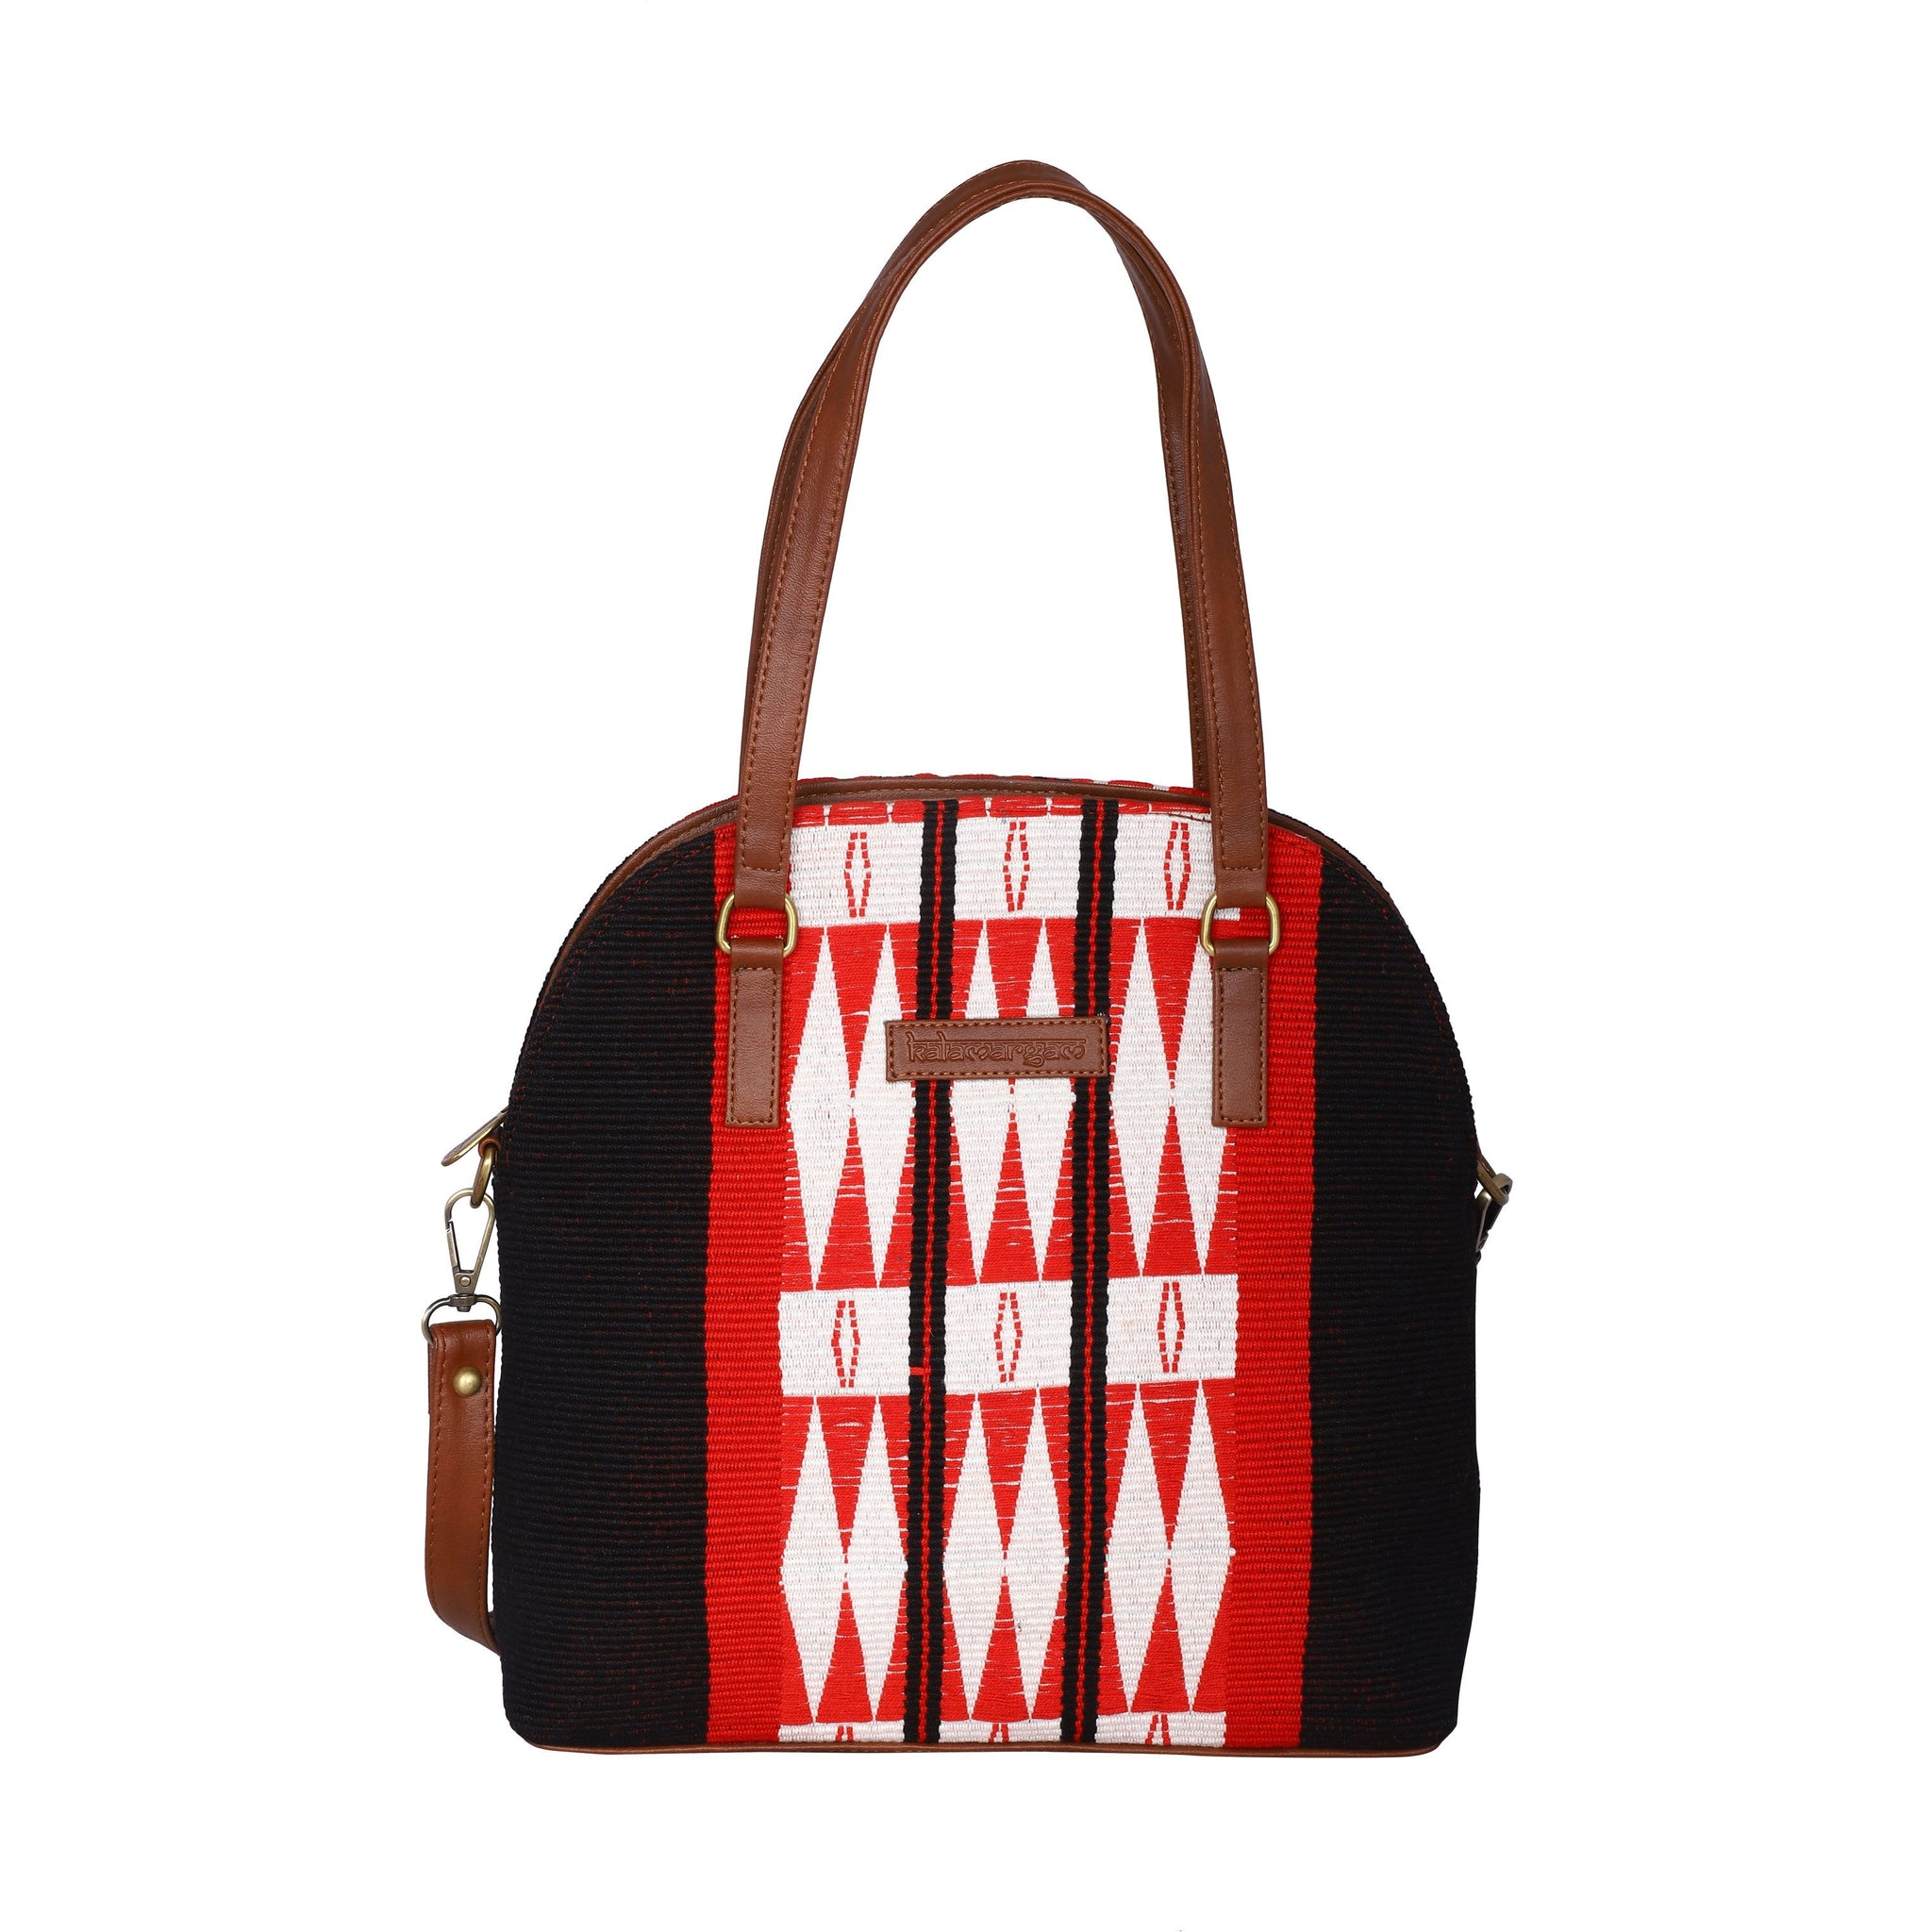 Womens handbag crafted from hill tribe naga textile, Crossbody bag, Vegan leather bag